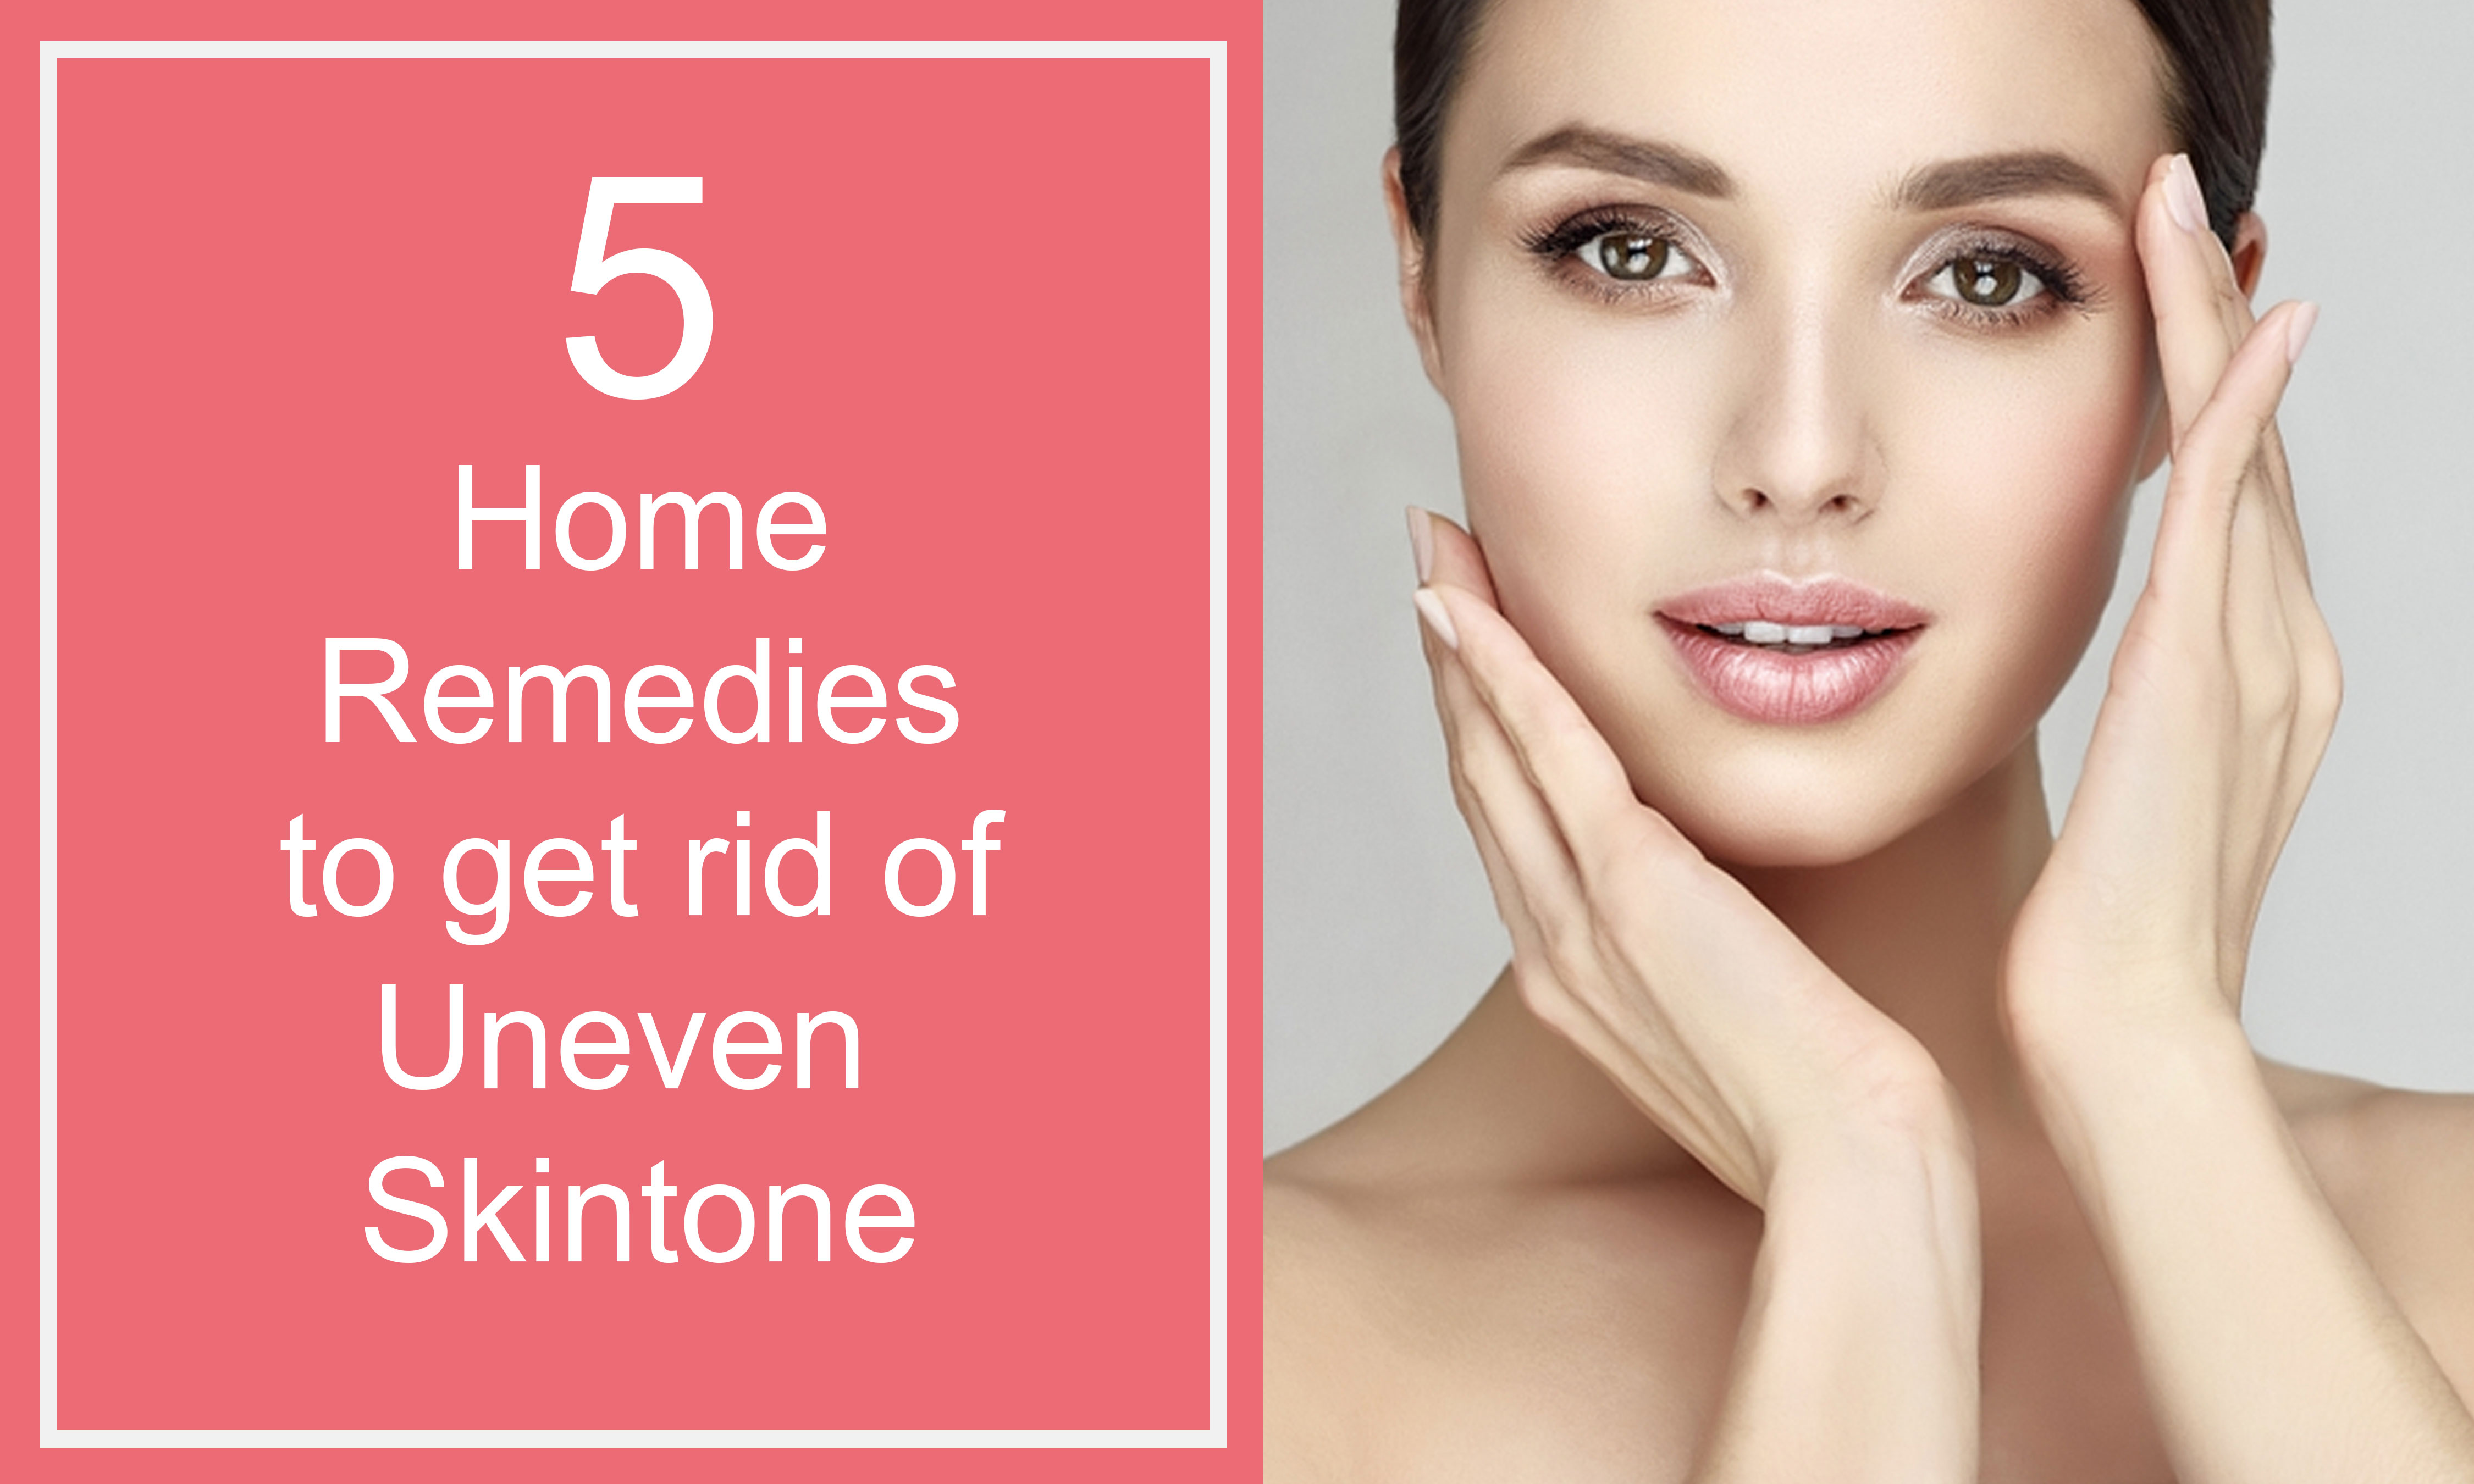 Home to get rid of uneven skin tone